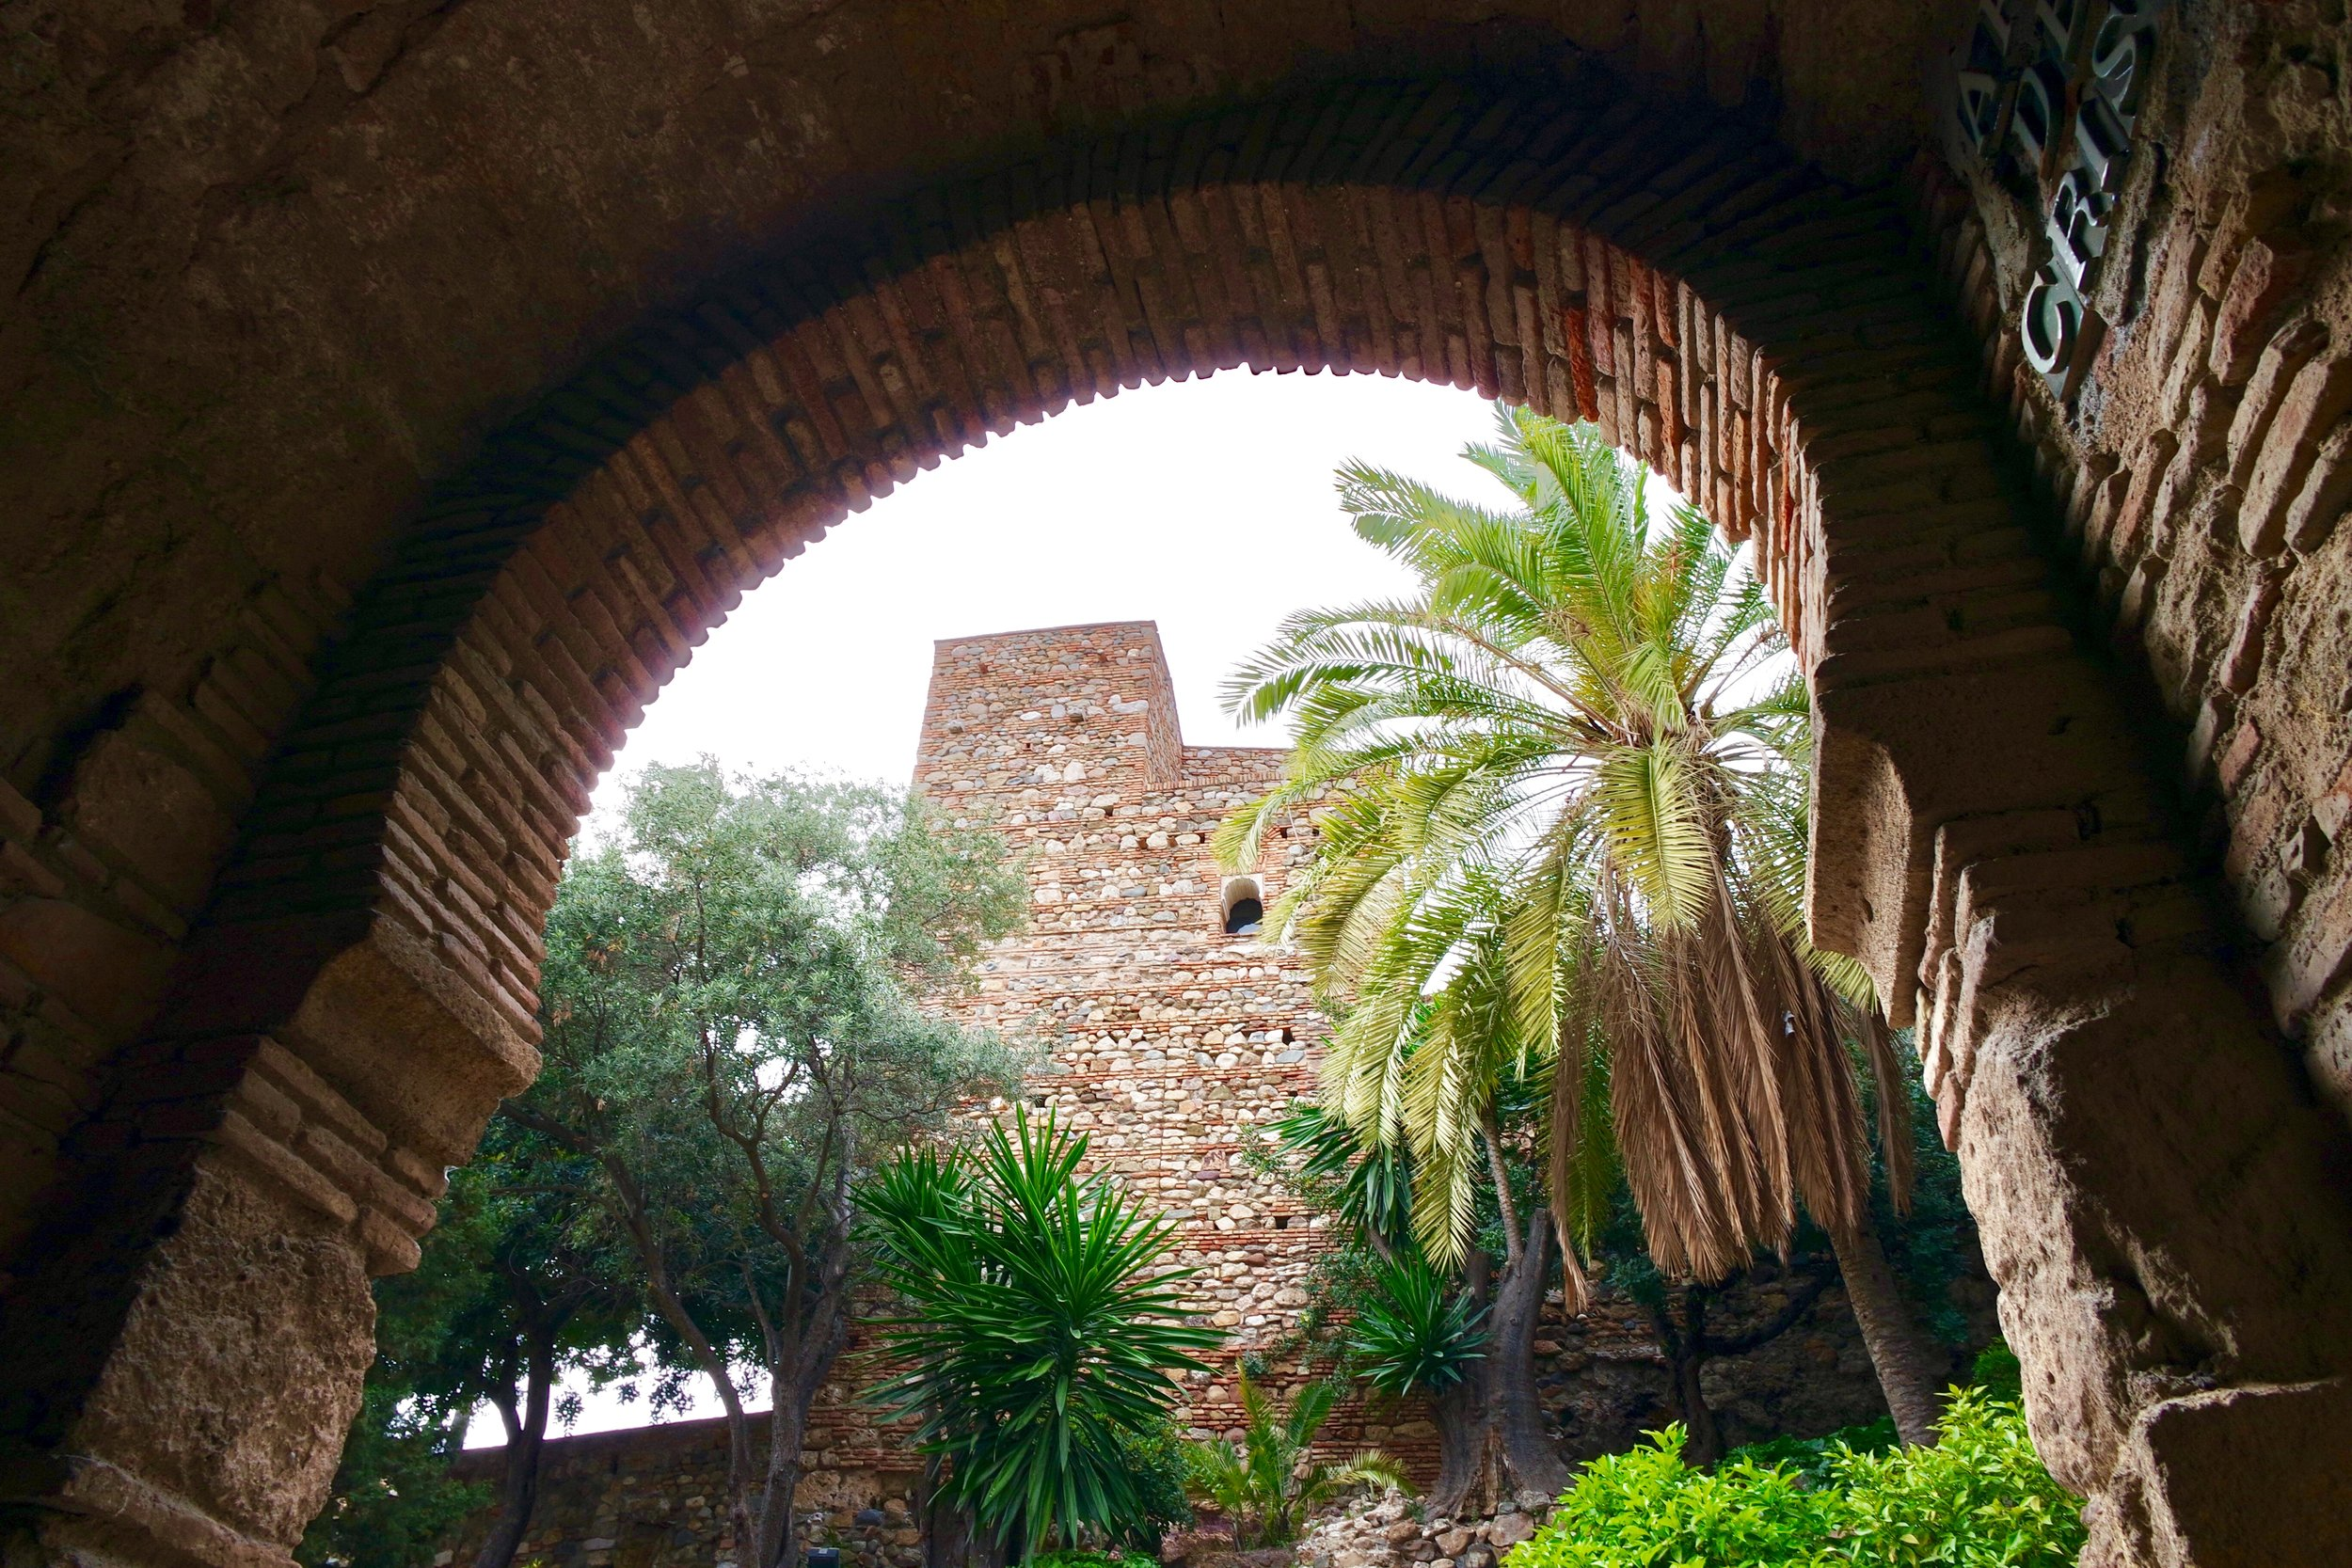 While shopping and eating your way through Málaga's city center, be sure to visit the Alcazaba